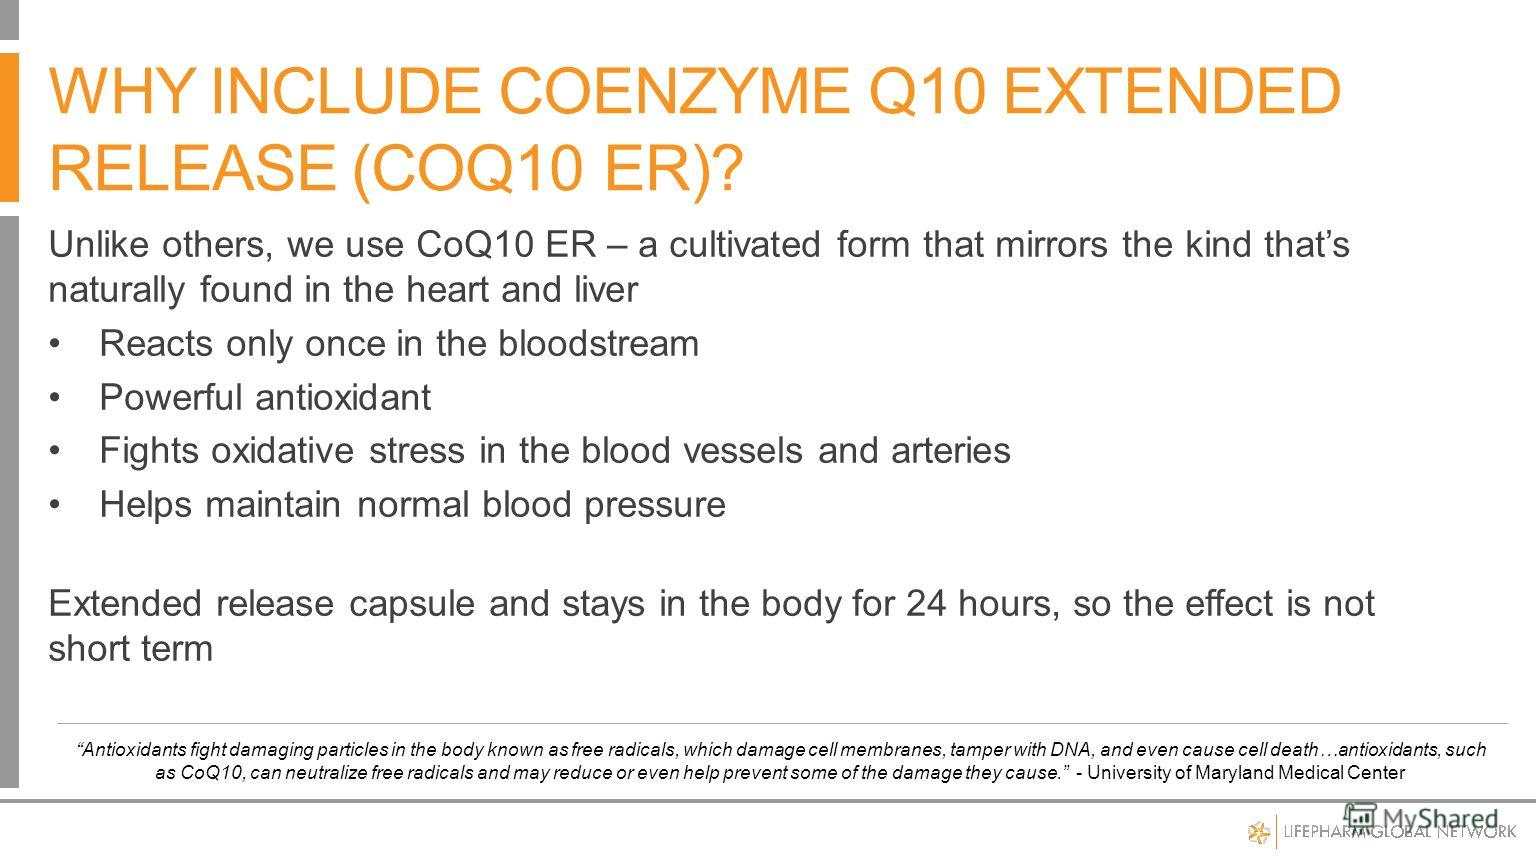 Unlike others, we use CoQ10 ER – a cultivated form that mirrors the kind thats naturally found in the heart and liver Reacts only once in the bloodstream Powerful antioxidant Fights oxidative stress in the blood vessels and arteries Helps maintain no